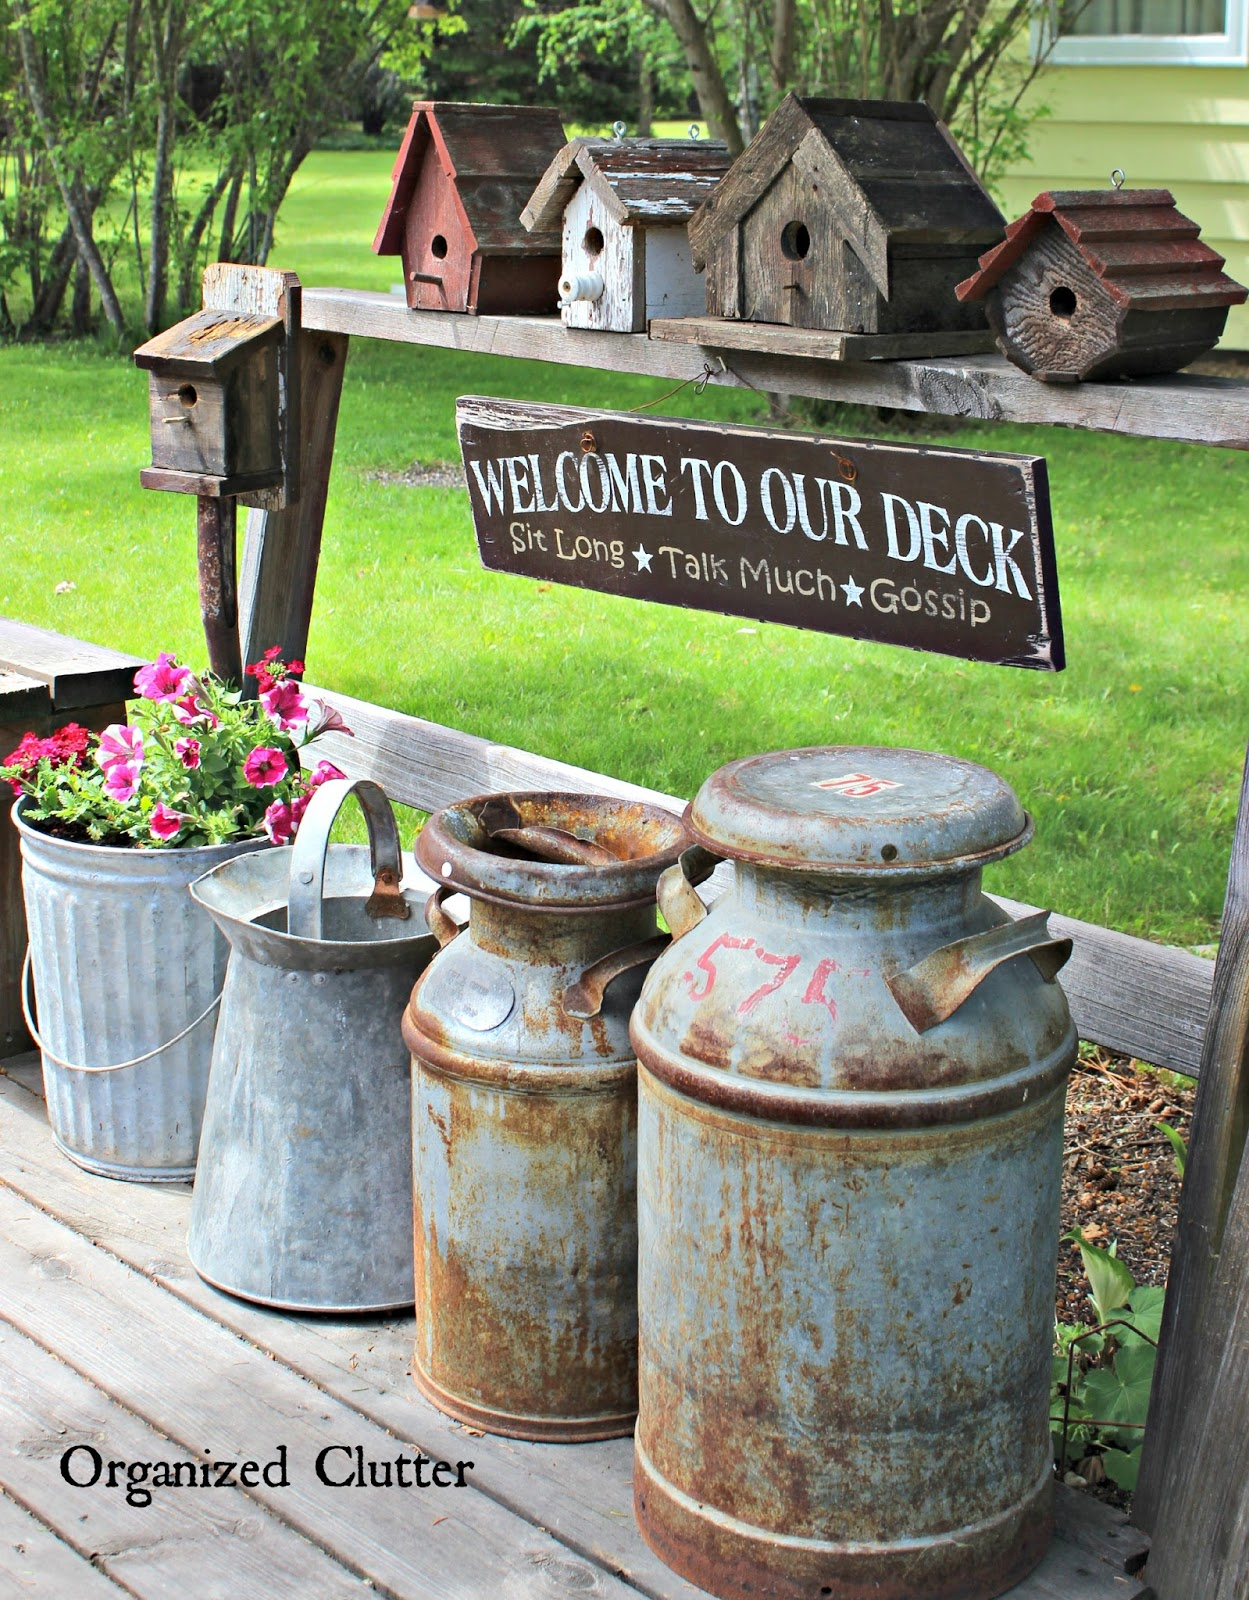 Decorating the deck with rustic birdhouses organized clutter for Rustic outdoor decorating